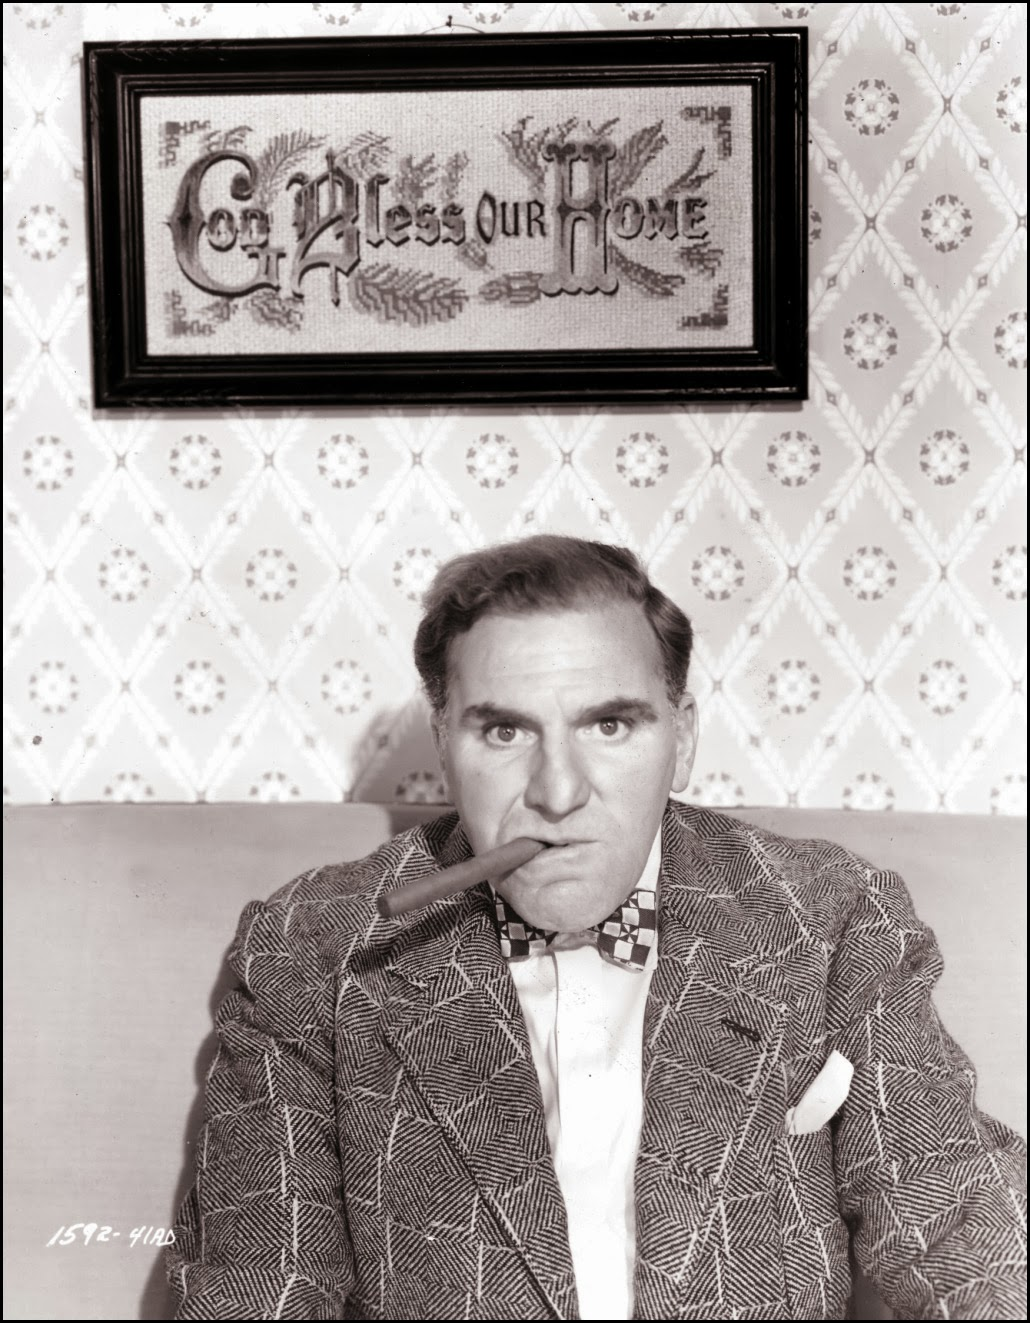 william bendix imageswilliam bendix tv show, william bendix actor, william bendix babe ruth, william bendix life of riley cast, william bendix tv series, william bendix the life of riley, william bendix height, william bendix keene state college, william bendix political science, william bendix find a grave, william bendix biography, william bendix youtube, william bendix movies youtube, william bendix movies list, william bendix filmography, william bendix twilight zone, william bendix baseball movie, william bendix wife, william bendix images, william bendix lifeboat